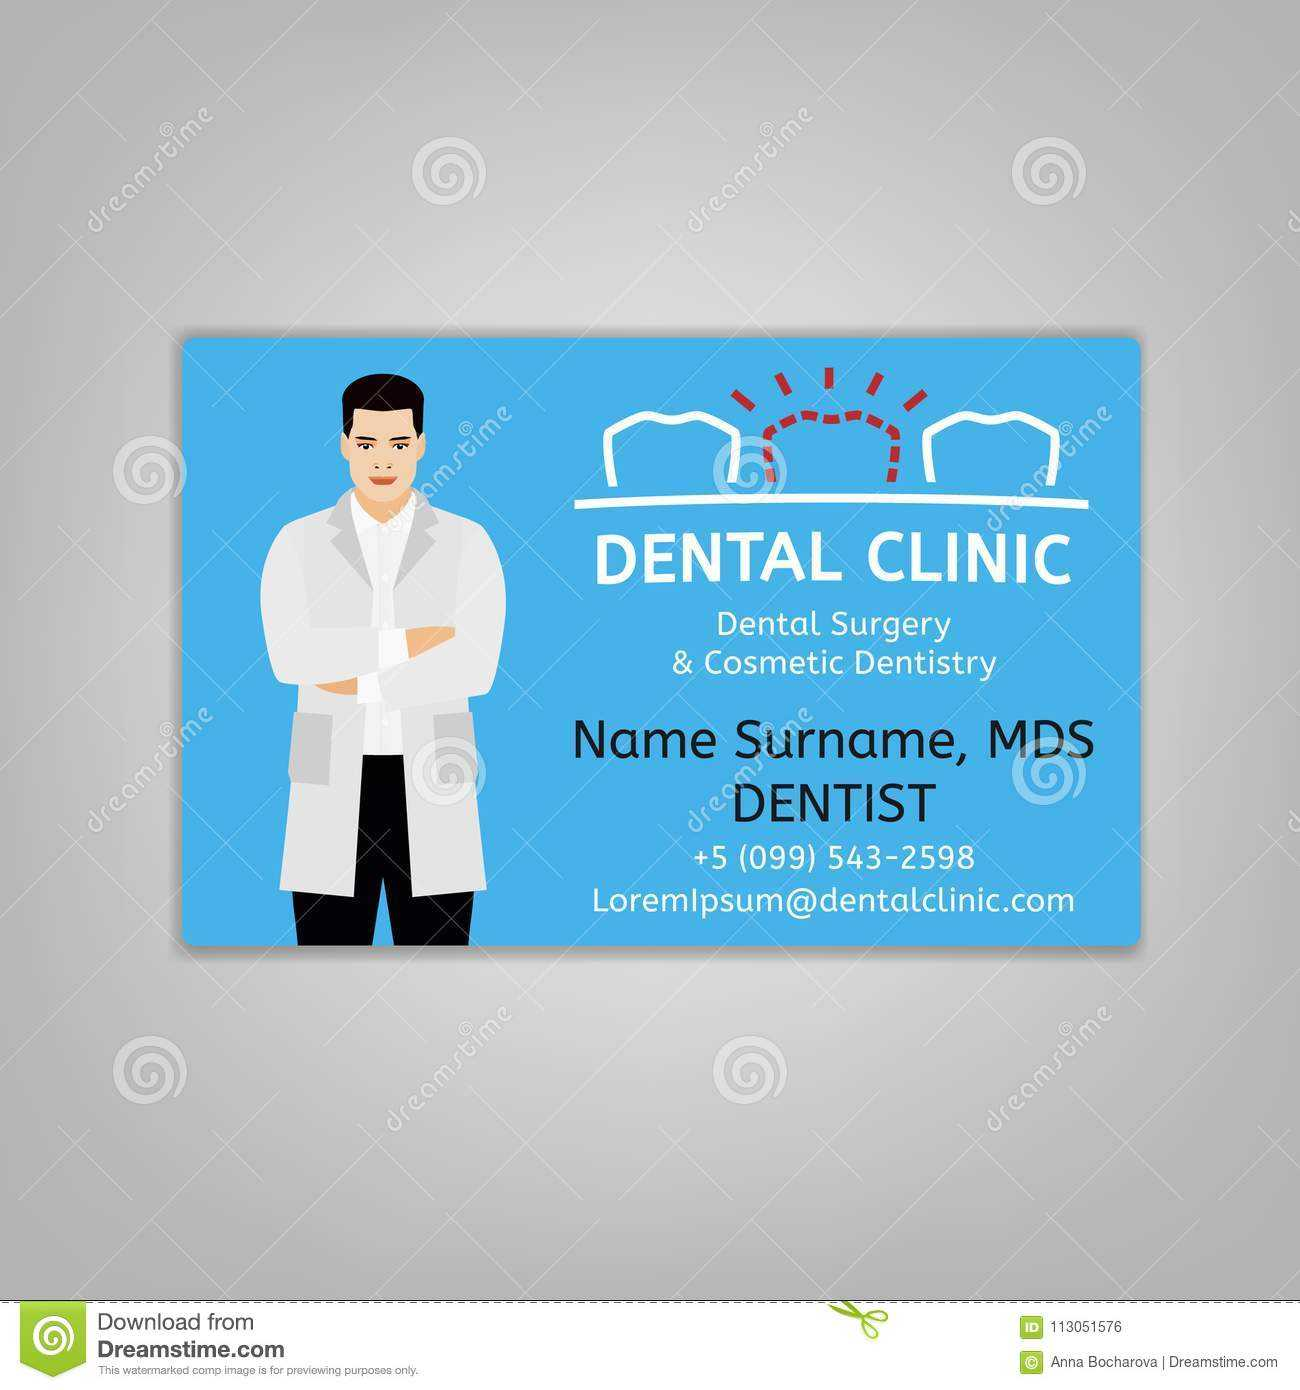 Doctor Id Card Stock Vector. Illustration Of Care, Dental pertaining to Doctor Id Card Template